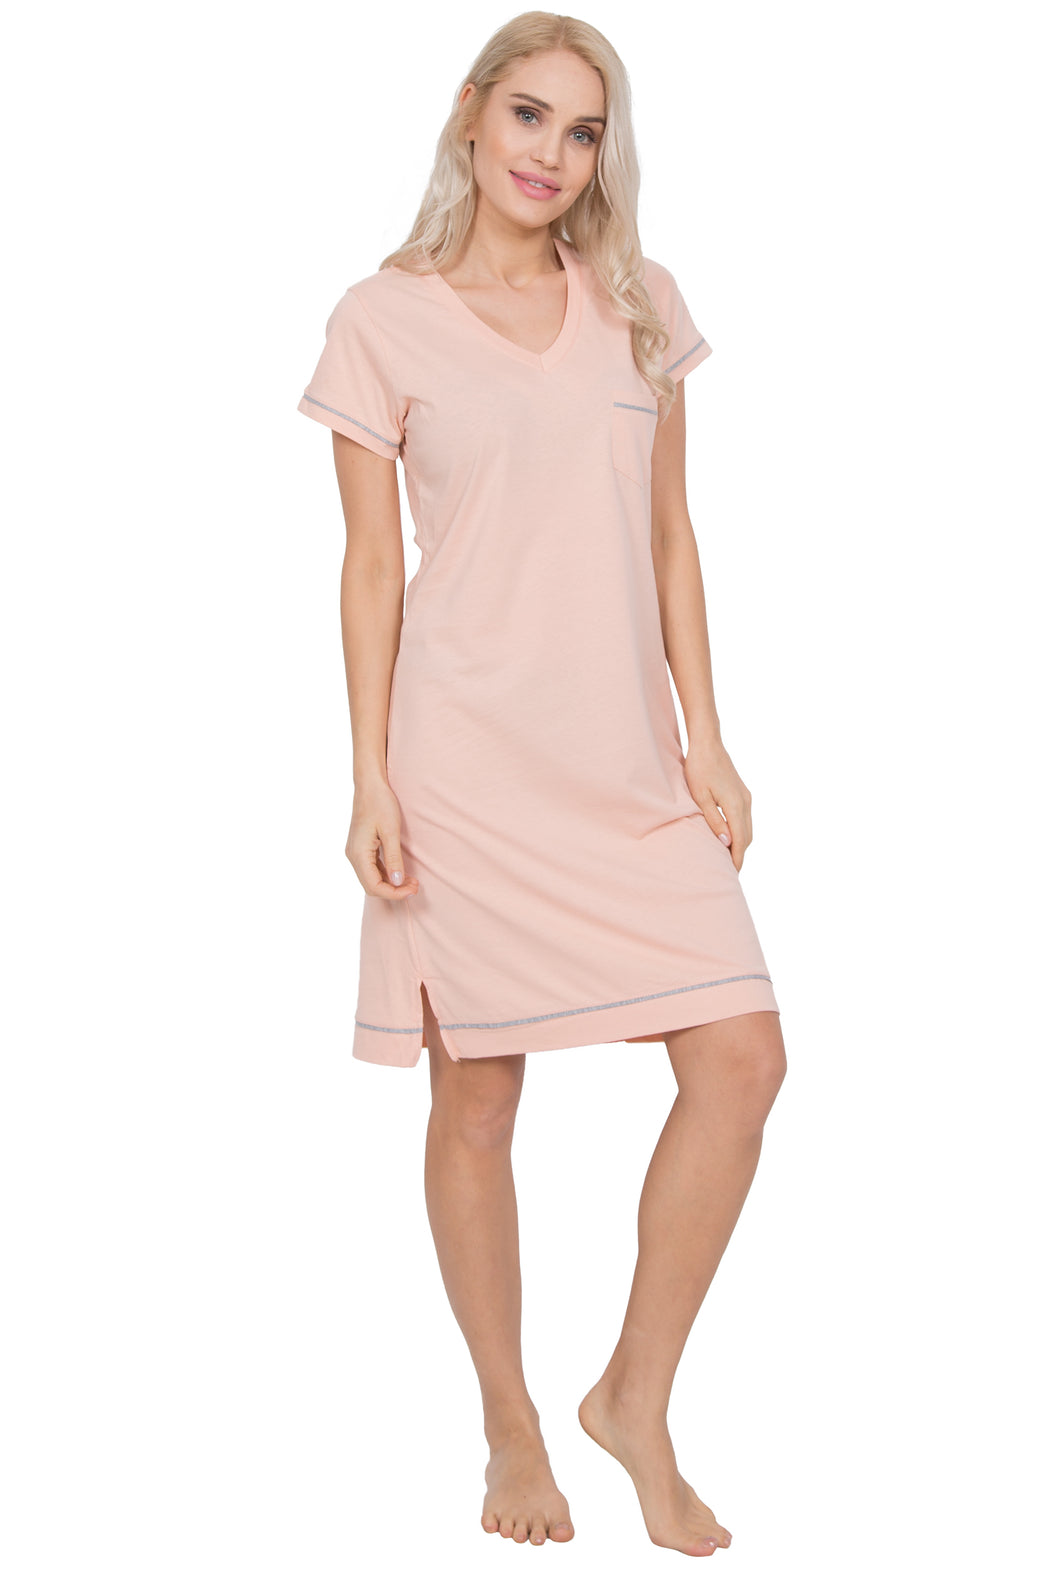 rochie noapte bumbac moale